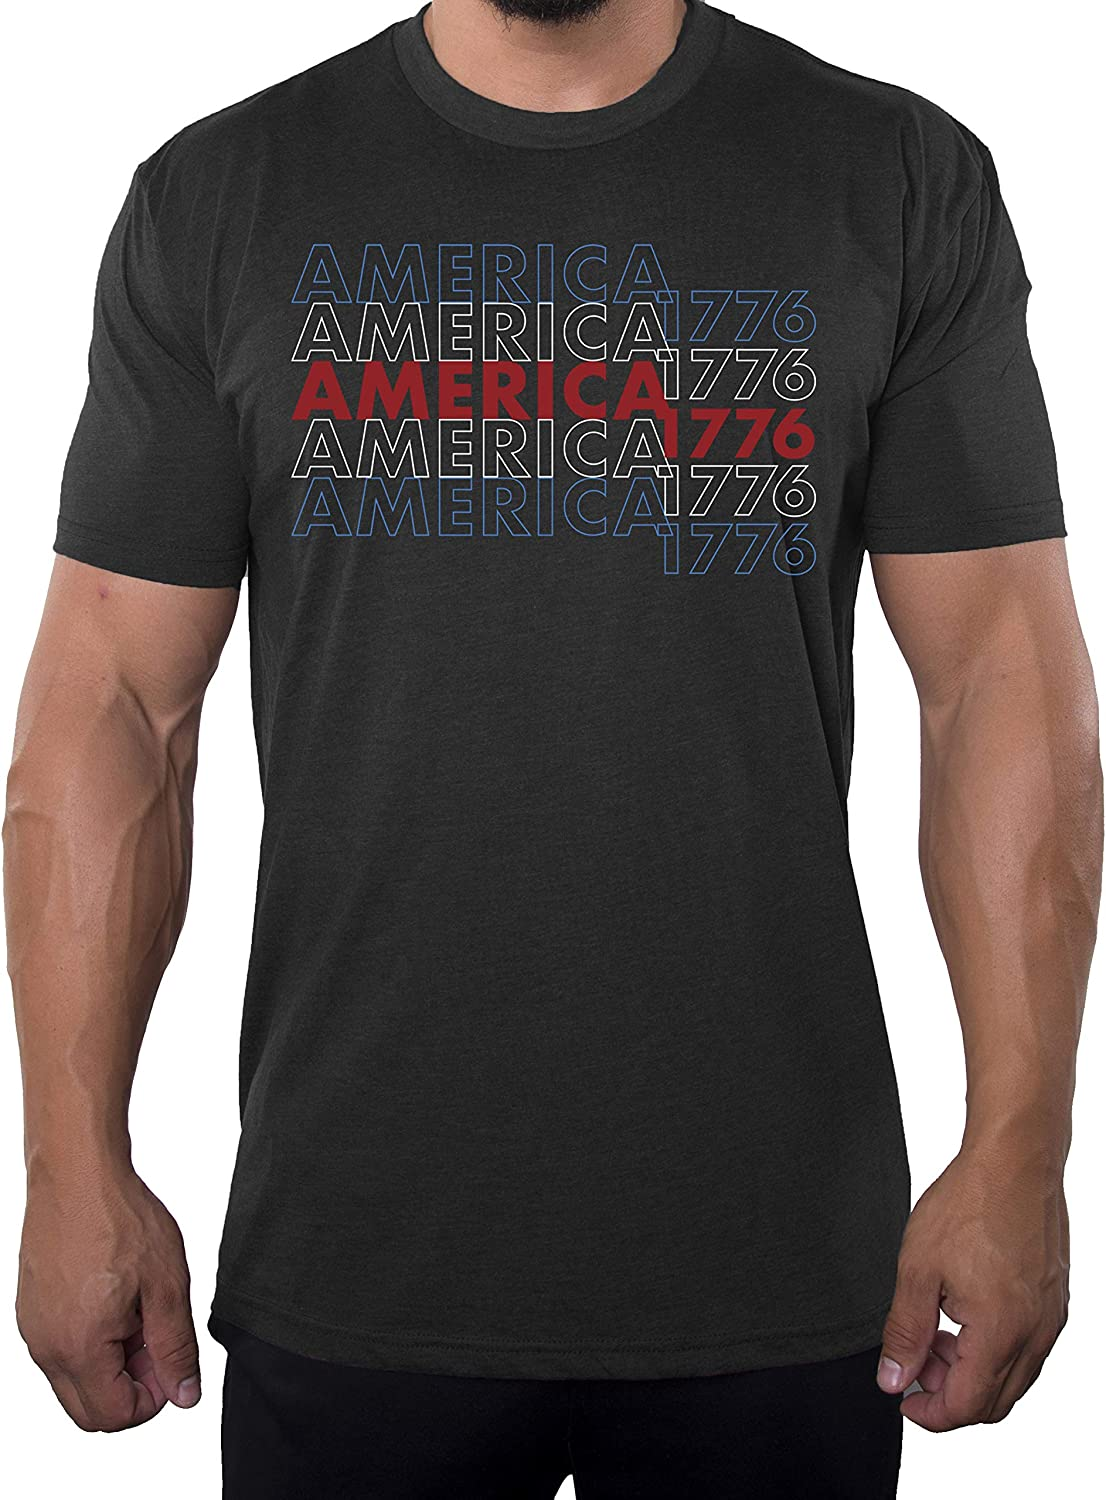 Mato & Hash America 1776 Men's Graphic T-Shirt, 4th of July T-Shirts for Men